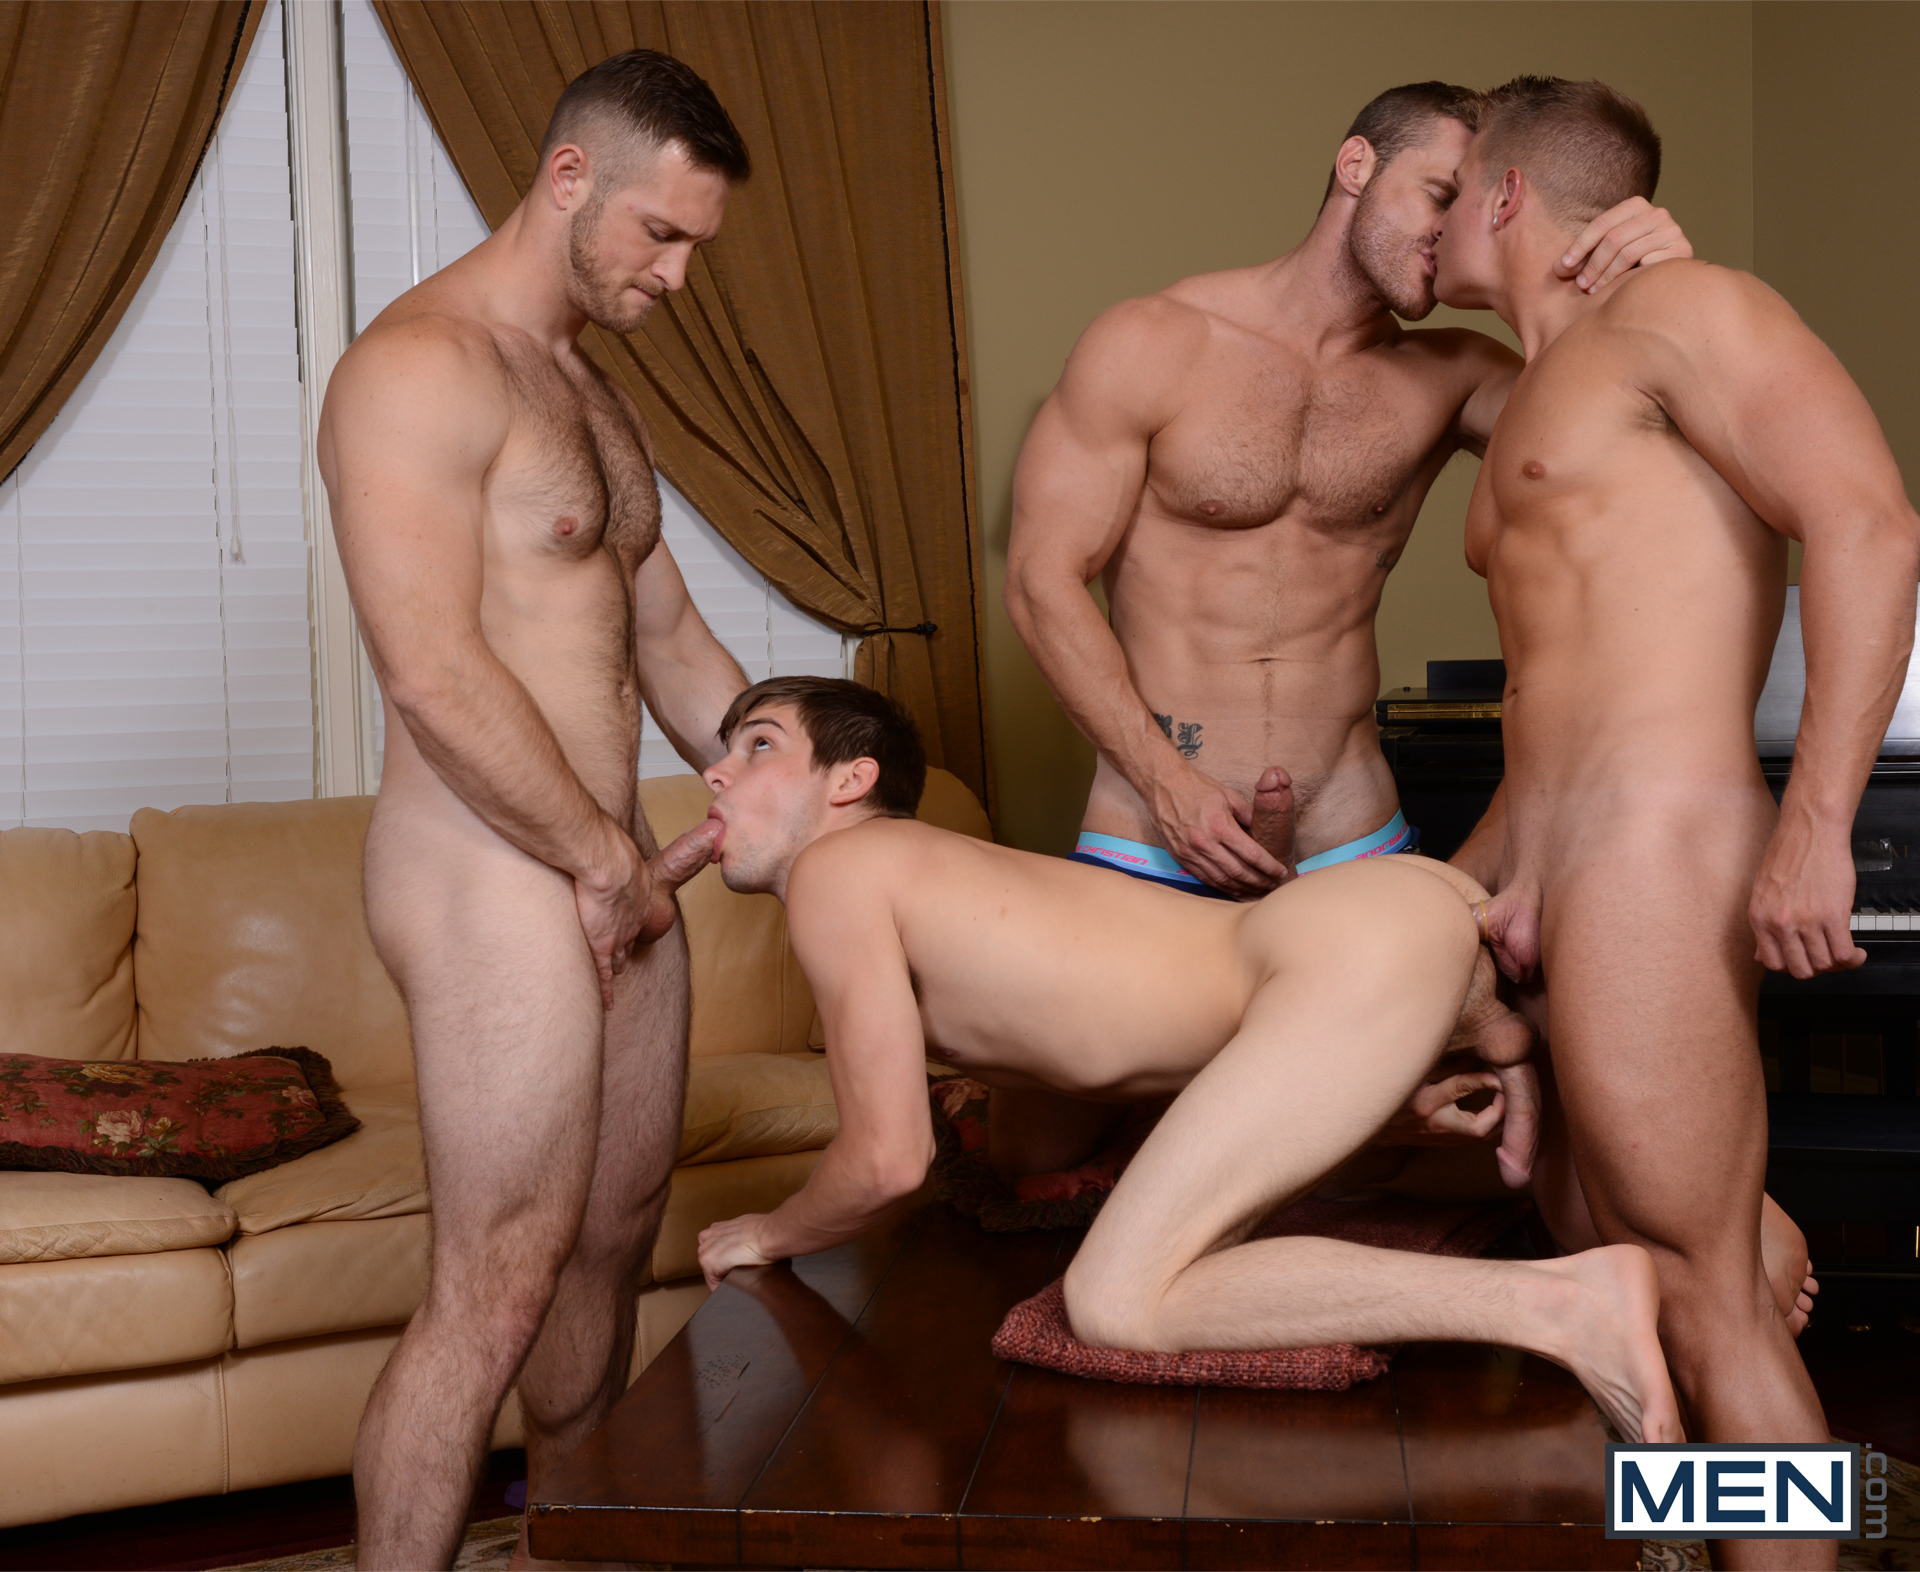 group sex porn site Gay Group Sex Videos | Download Free Porn | QueerPixels.